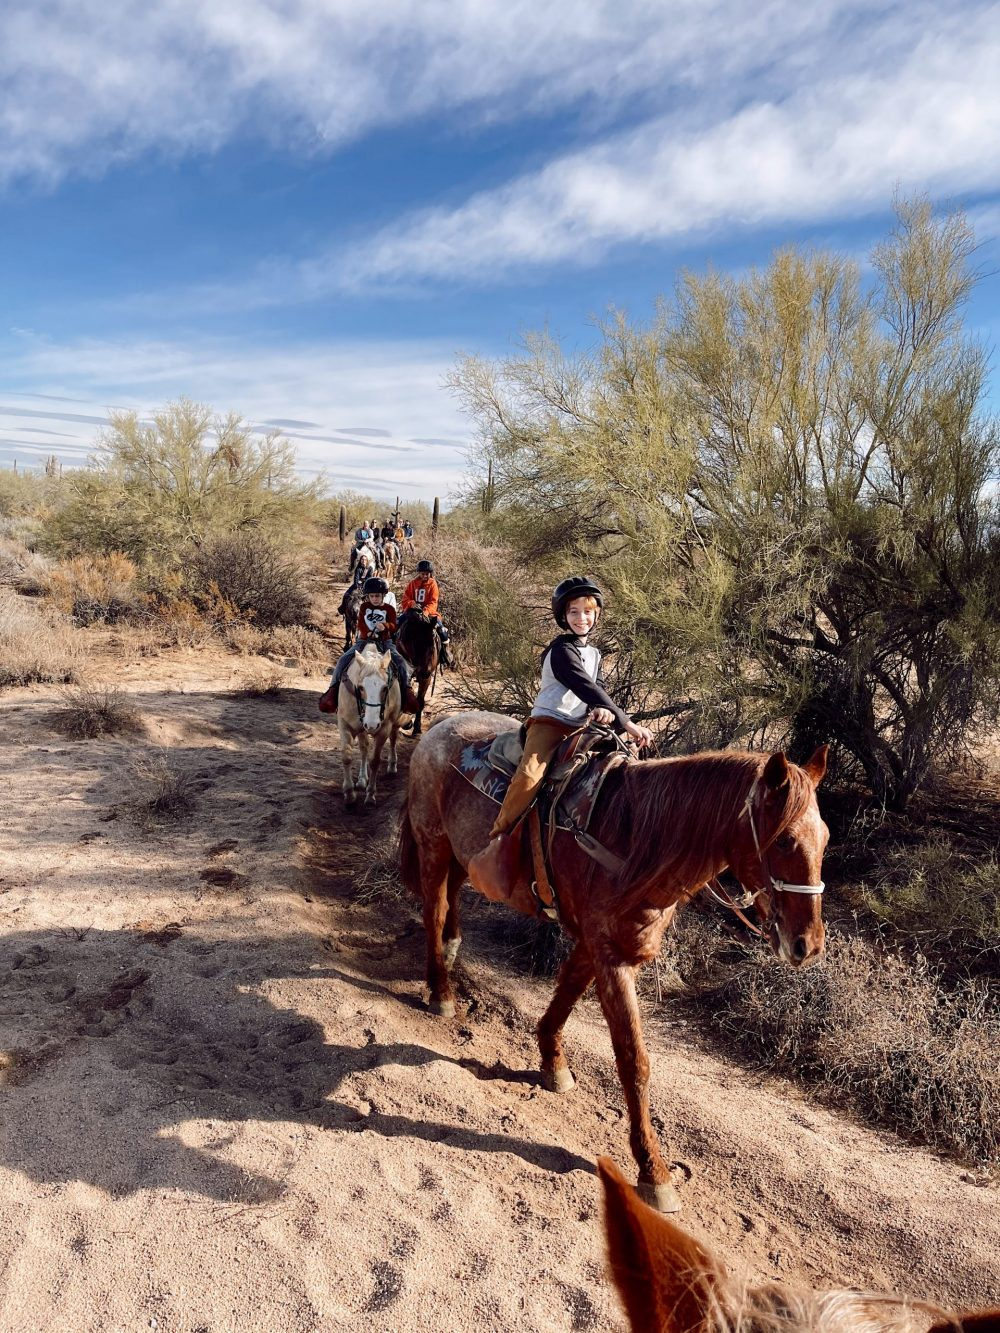 One of the Best Secret Winter Sun Destinations, Scottsdale Arizona. Horseback riding in the desert and family-friendly activities at MacDonald's Ranch. |Guide by popular Florida travel blog, Fresh Mommy Blog: image of a group of people riding horses.